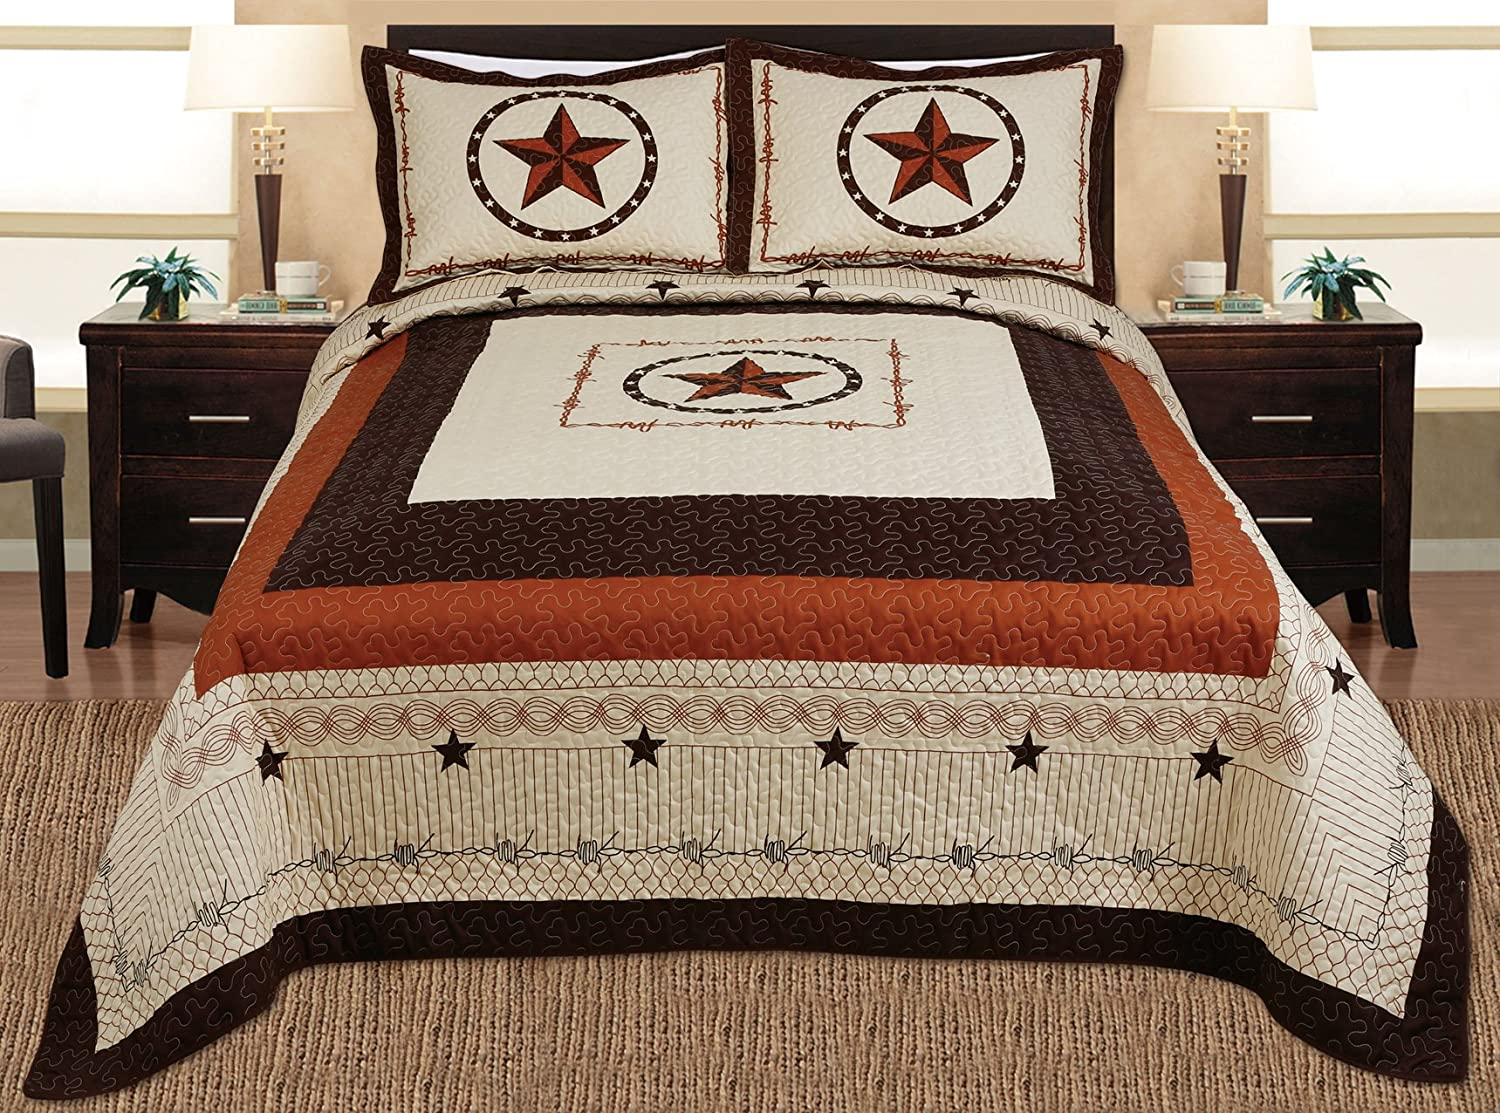 Cabin Bedding Sets Sale – Ease Bedding with Style : king quilt bedding sets - Adamdwight.com